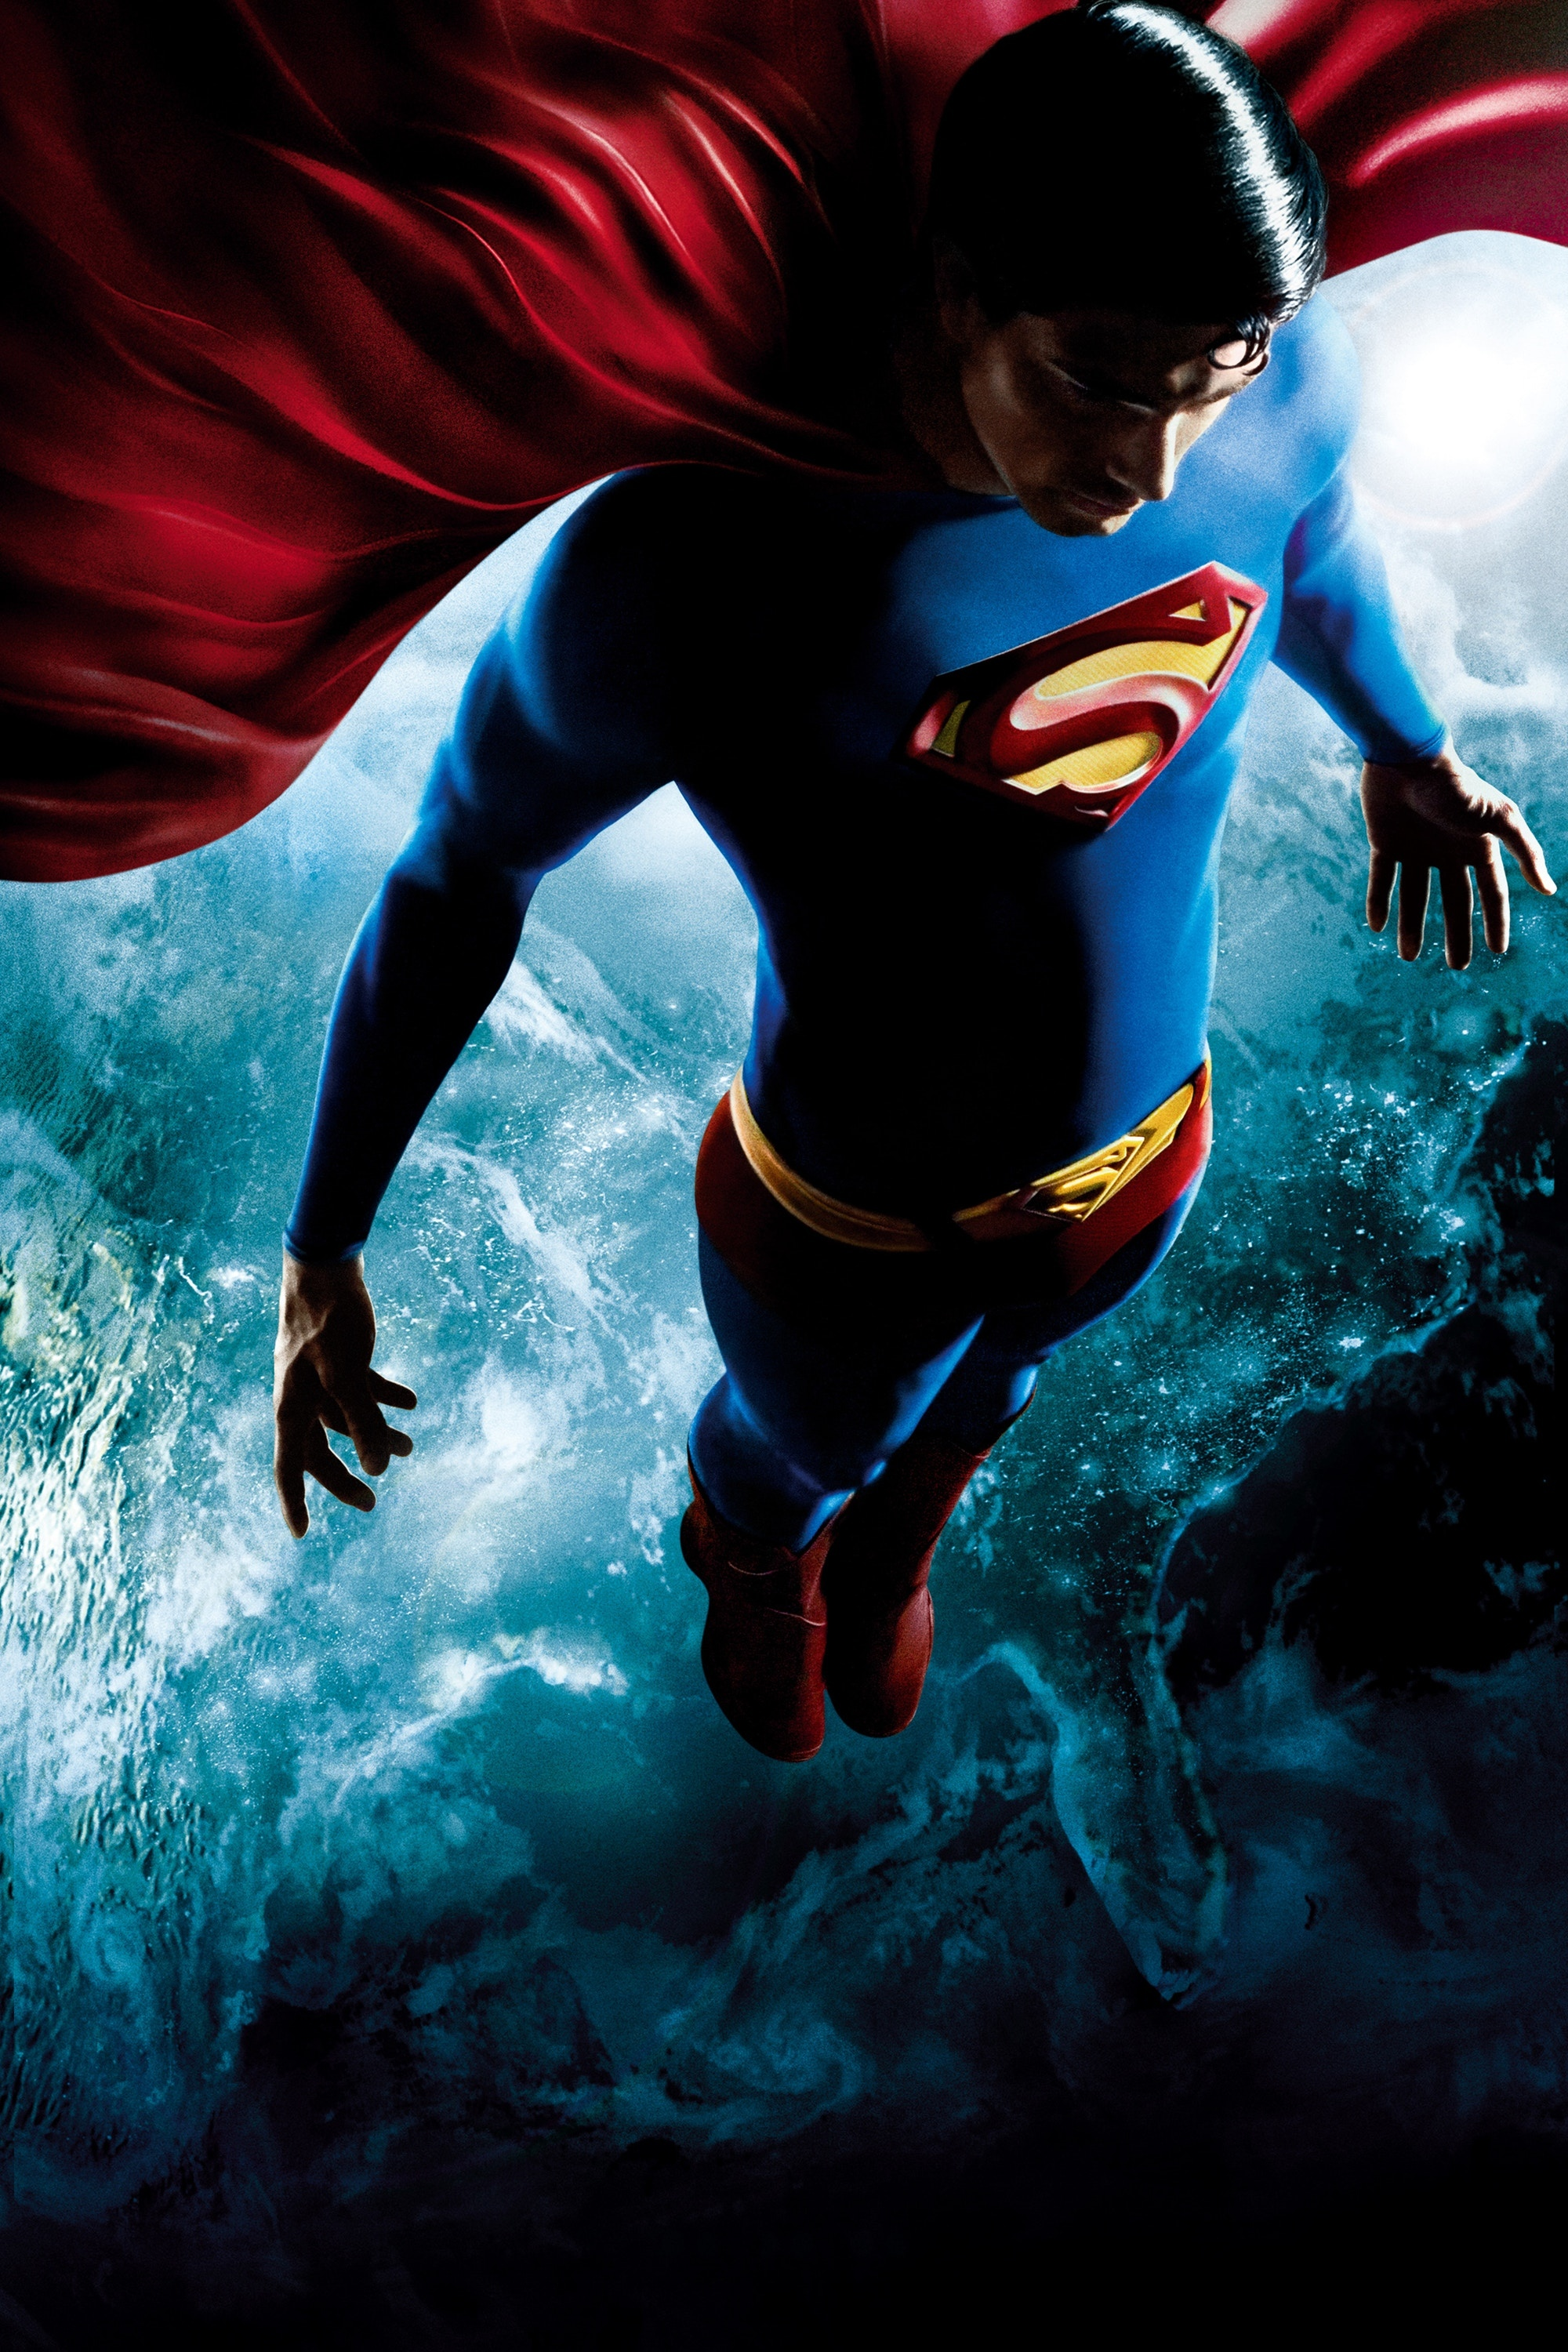 Superman Returns The Official Movie Adaptation Textless.jpg